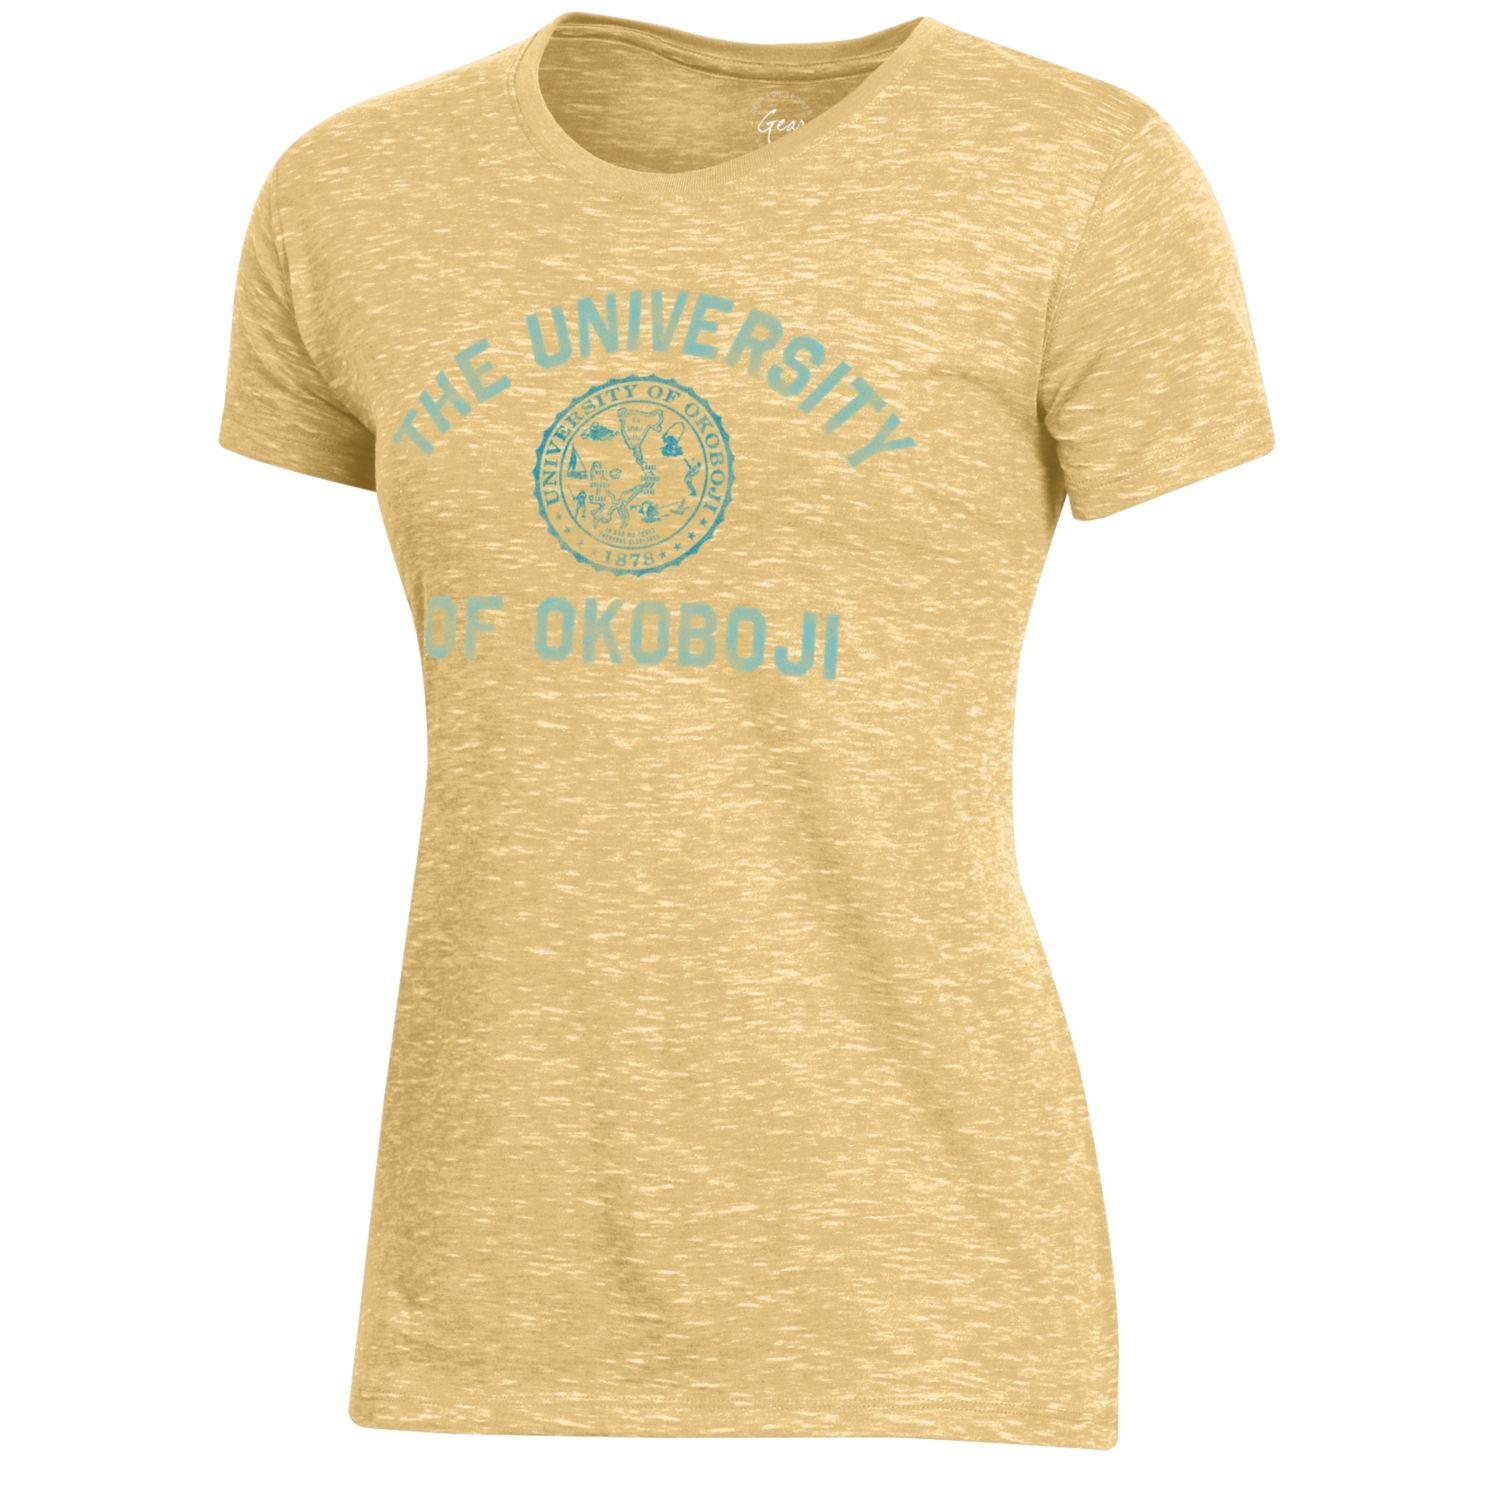 Ladies Okoboji Fireside Tee - Butter Yellow